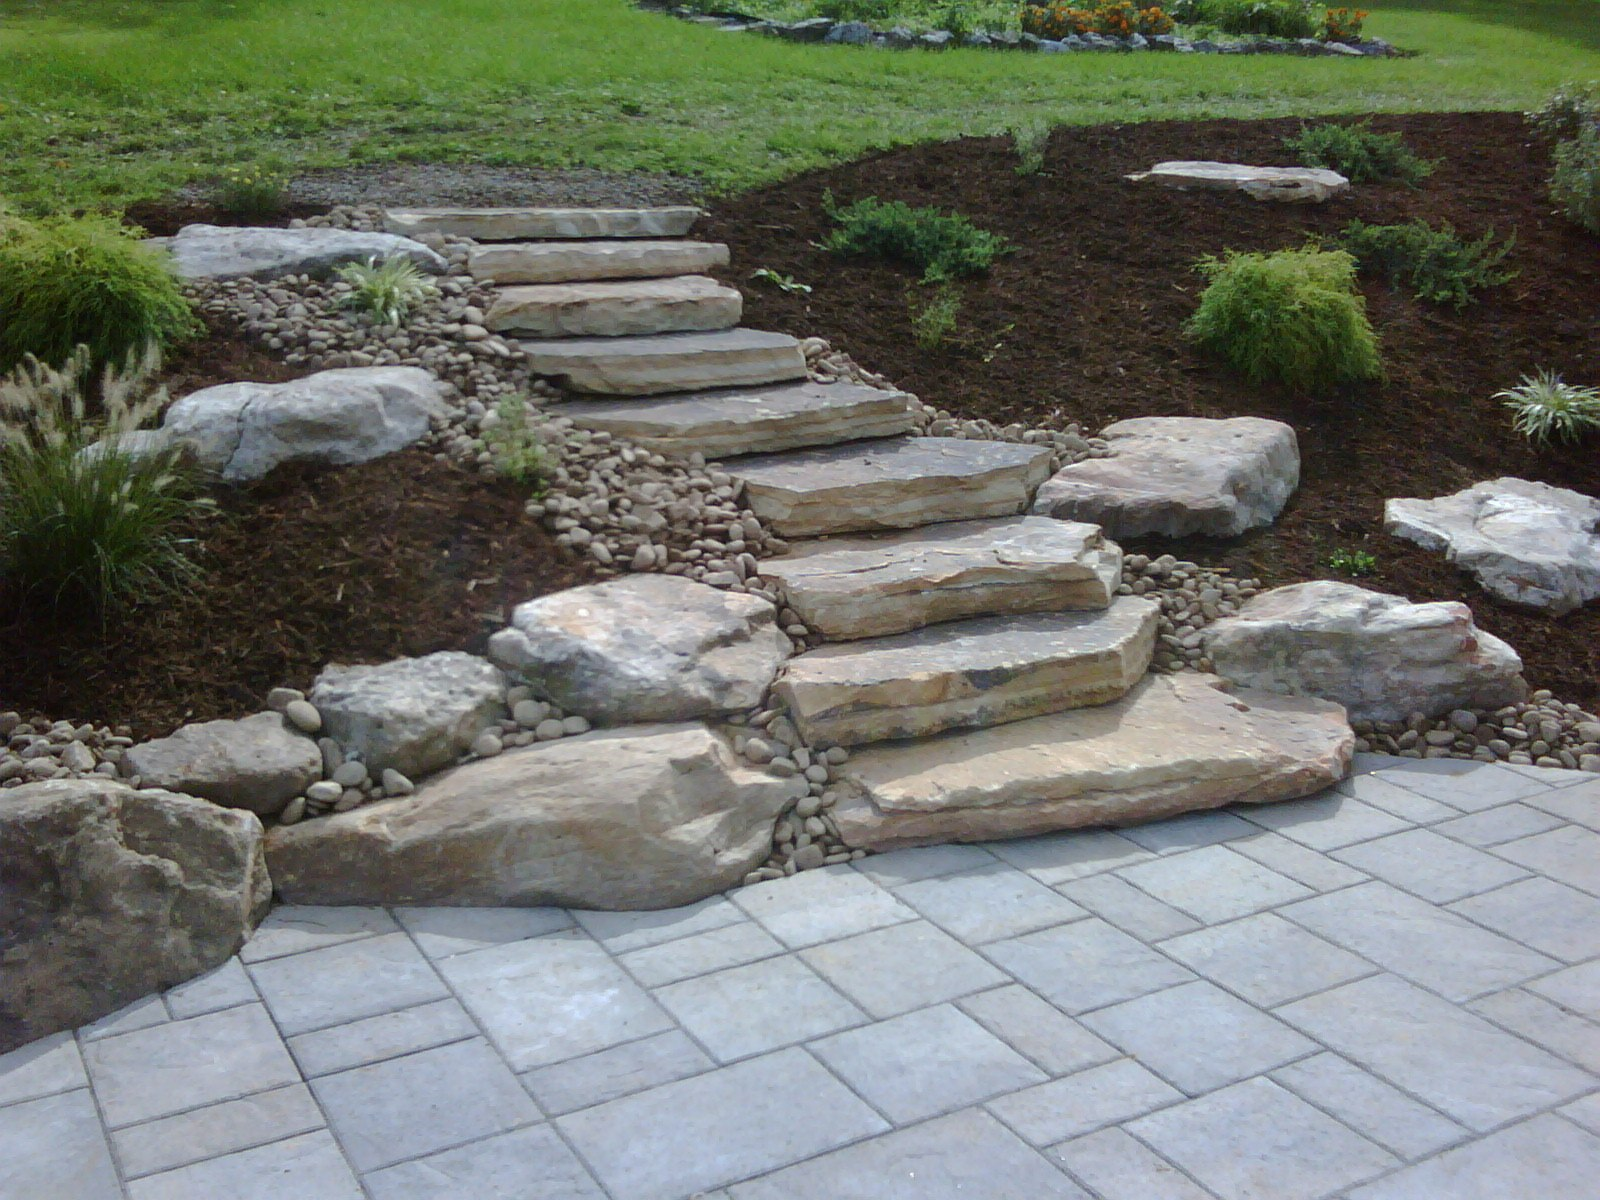 Professional landscape maintenance company in Berks County, PA